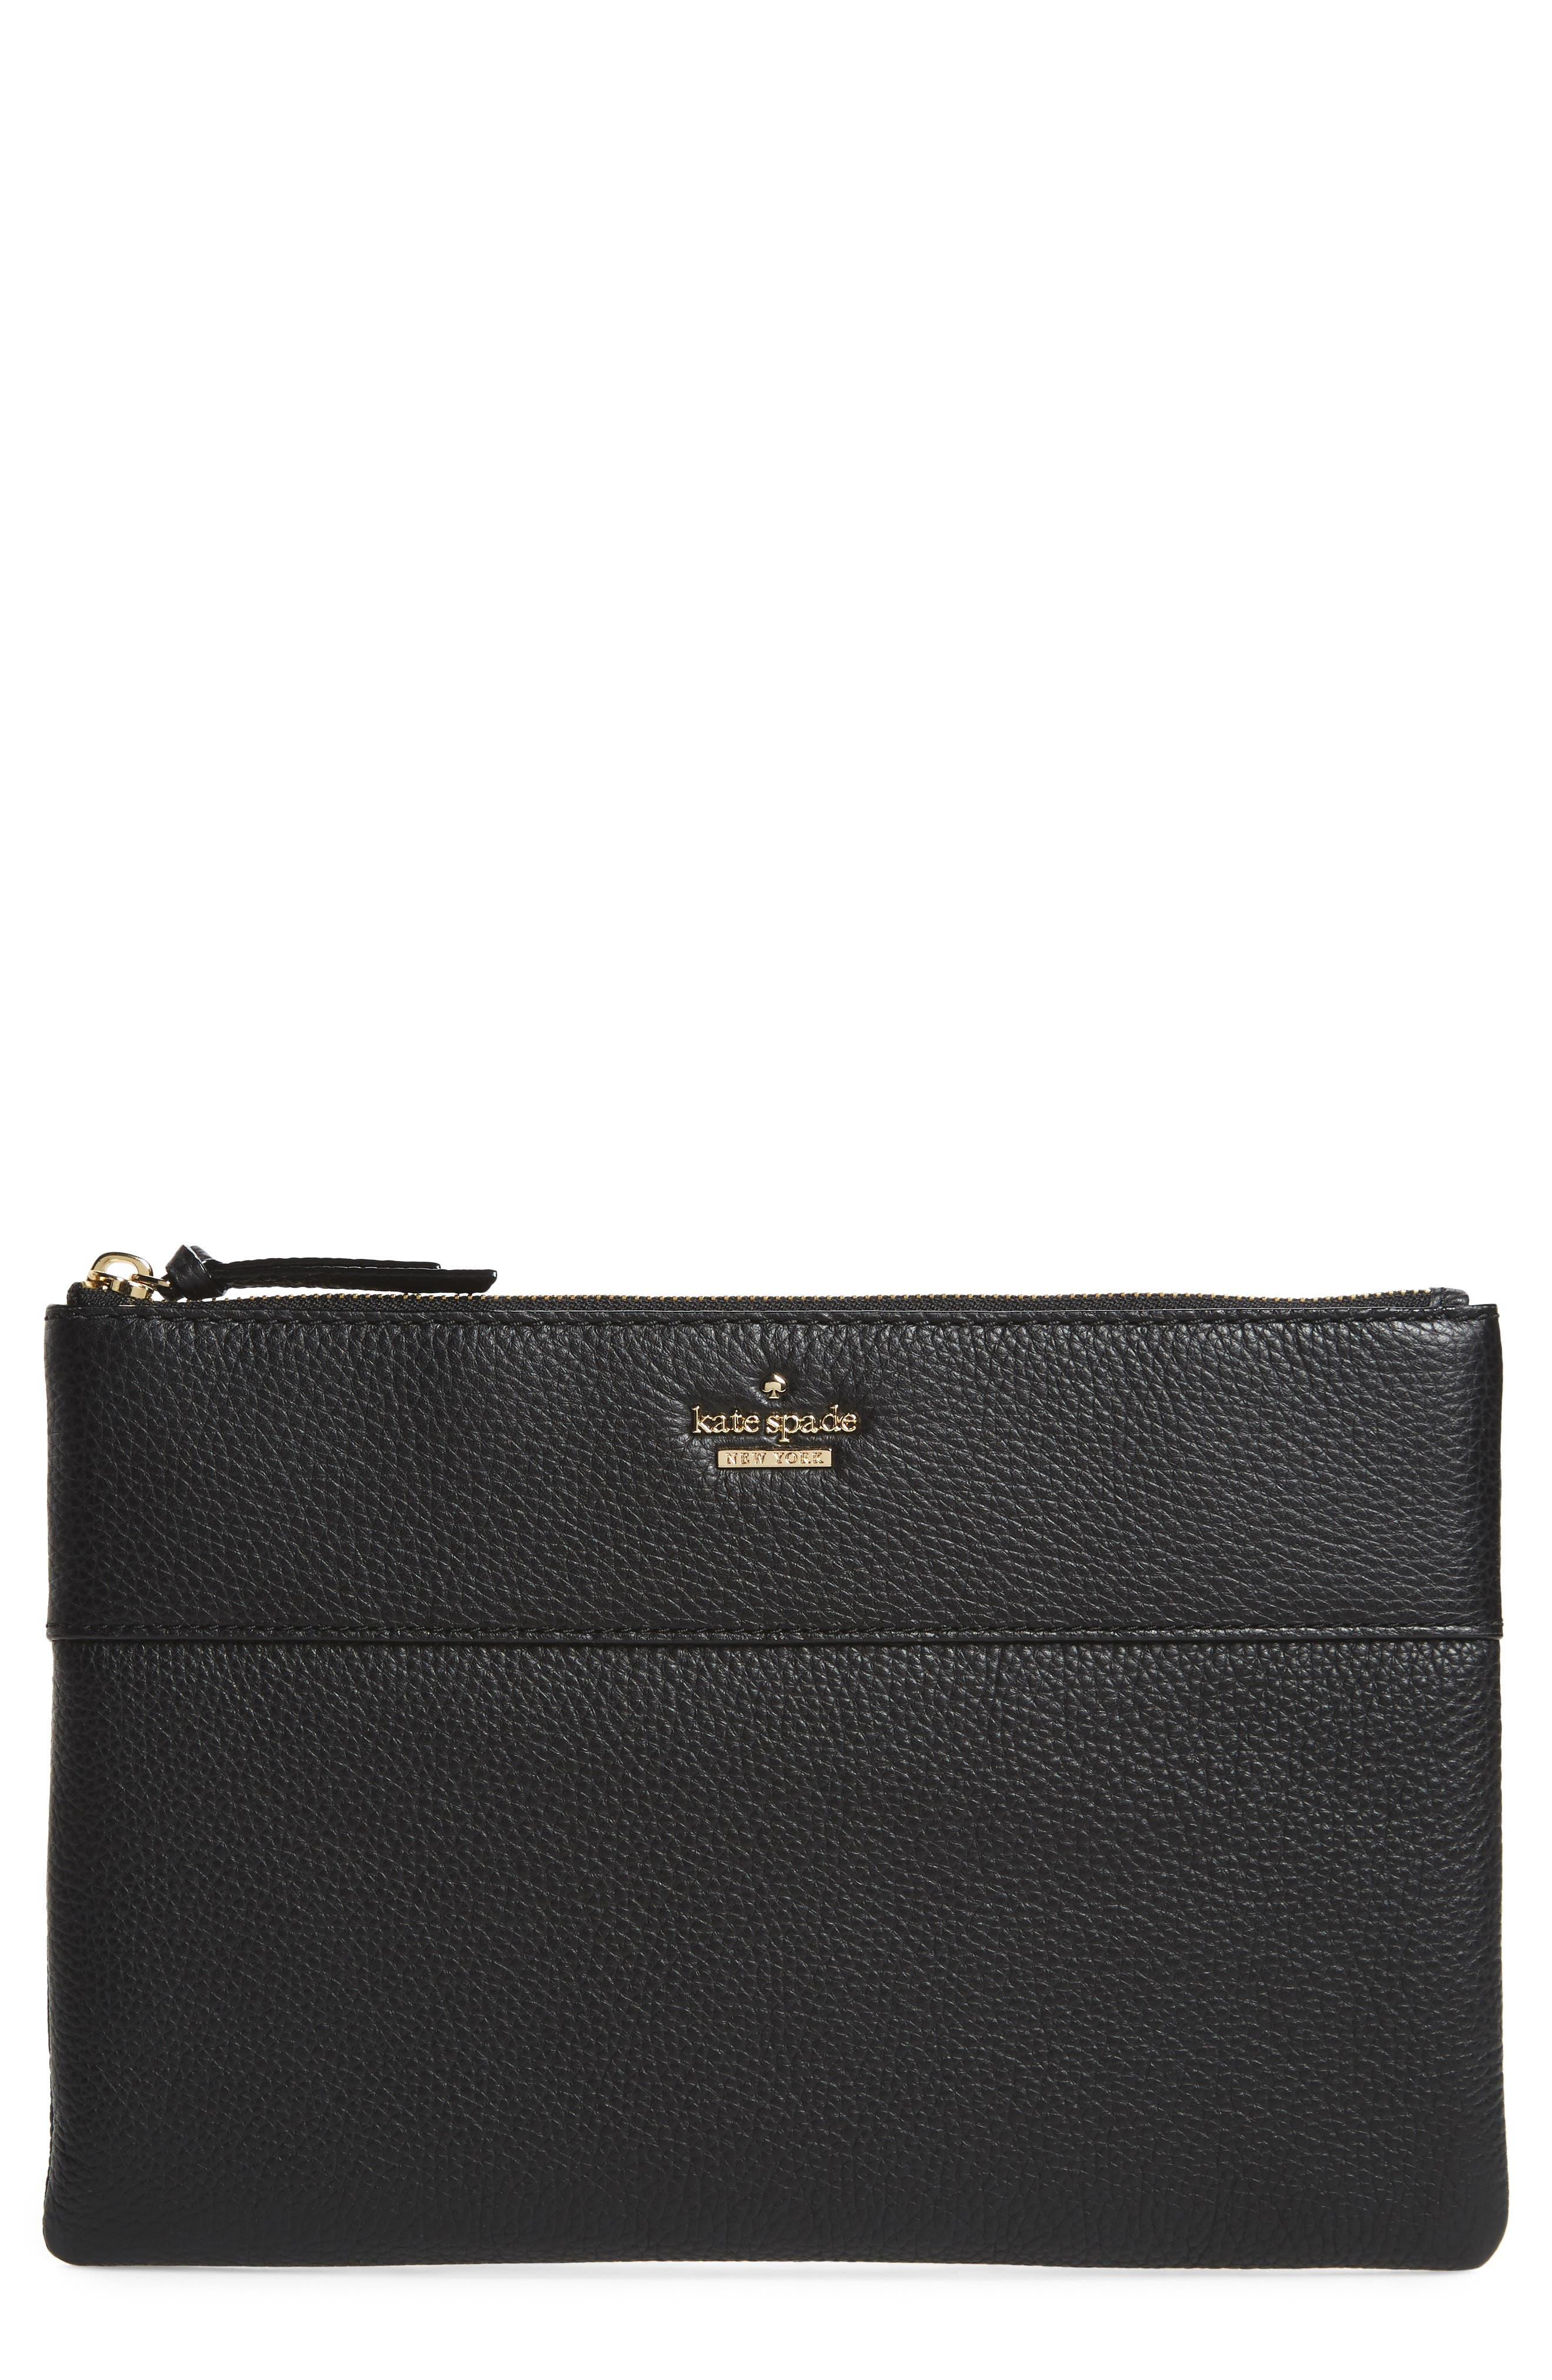 jackson street large mila leather pouch,                         Main,                         color, 001